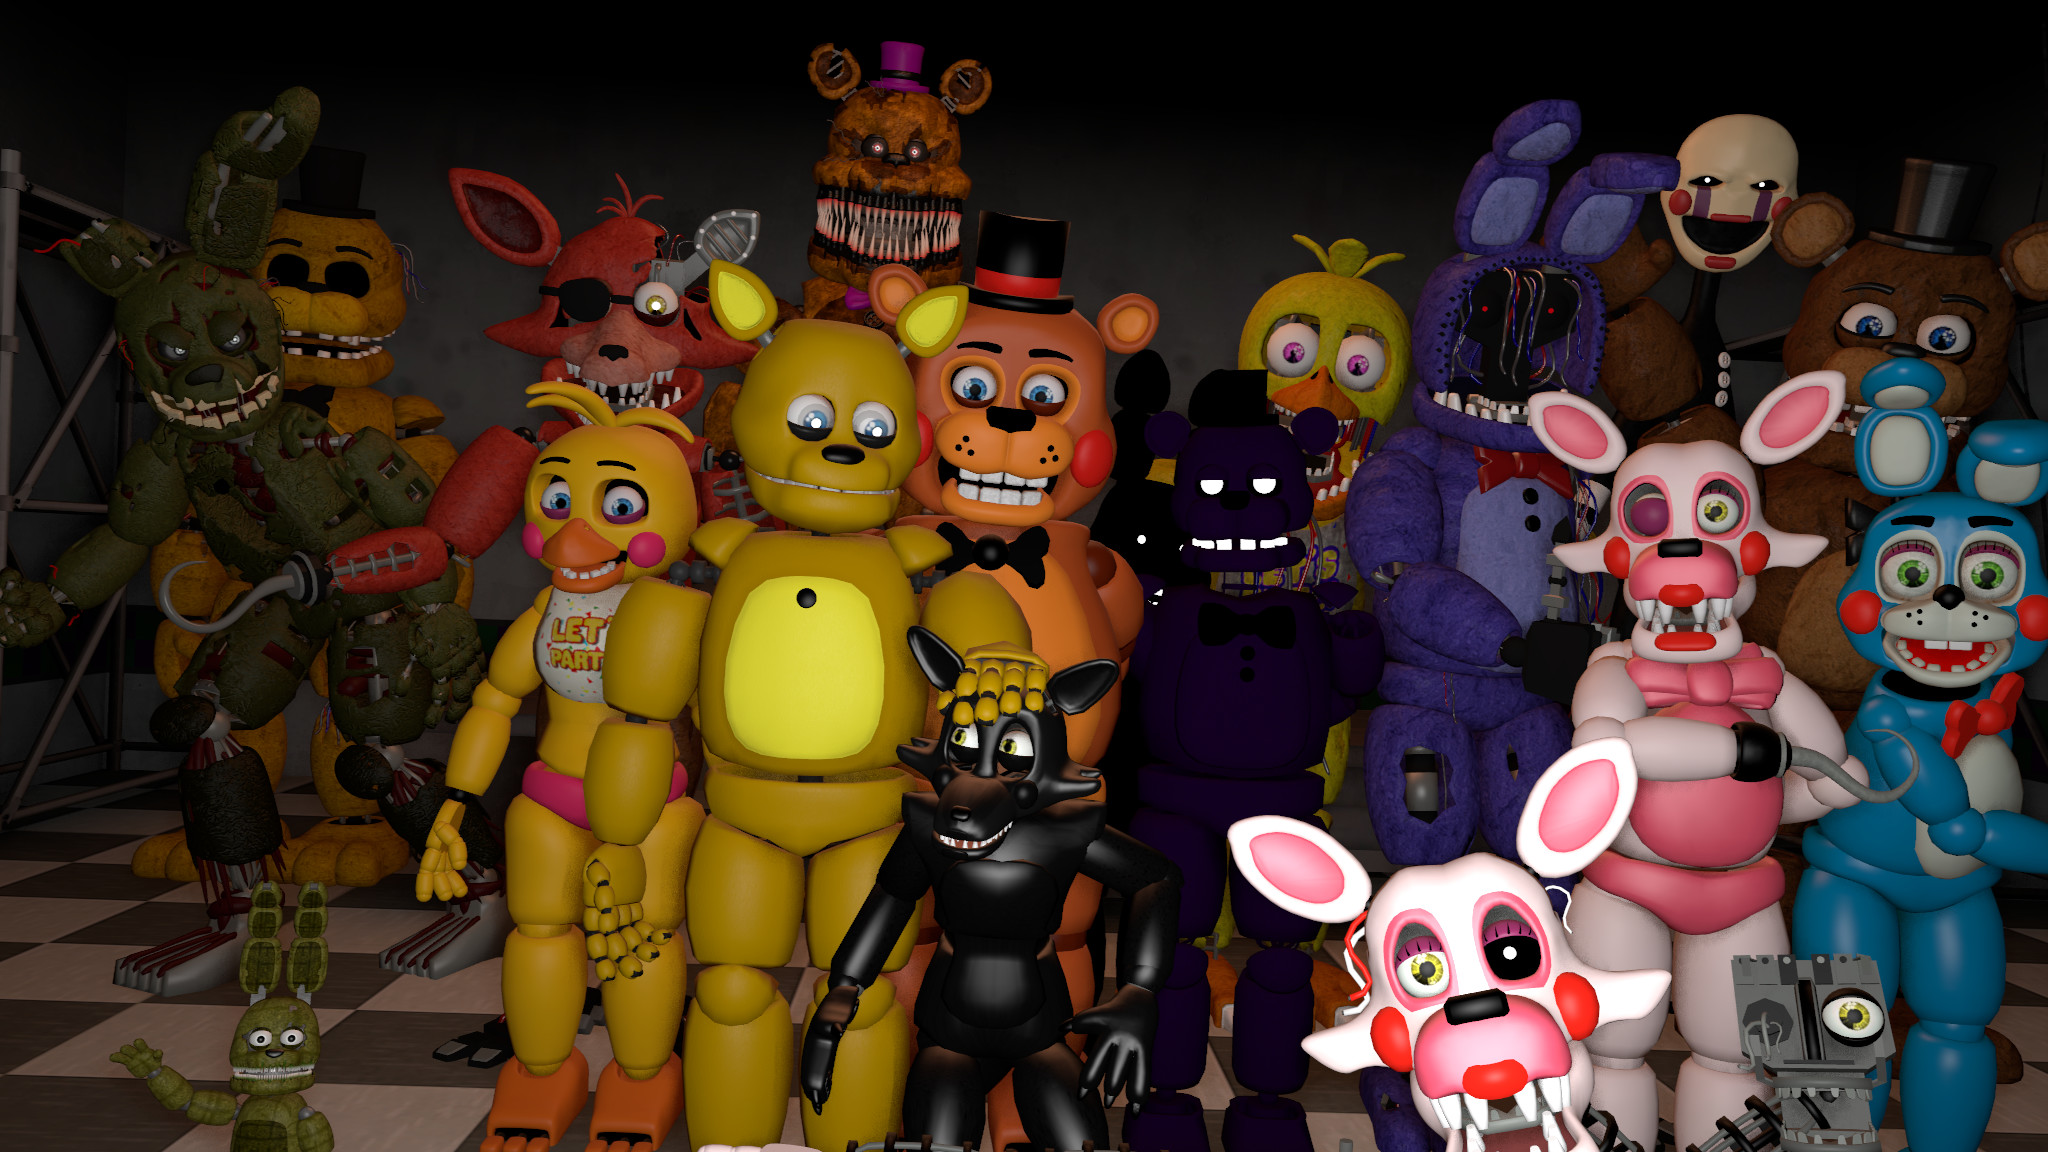 2048x1152 Fnaf Series Season 1 cast by DDolhon on DeviantArt